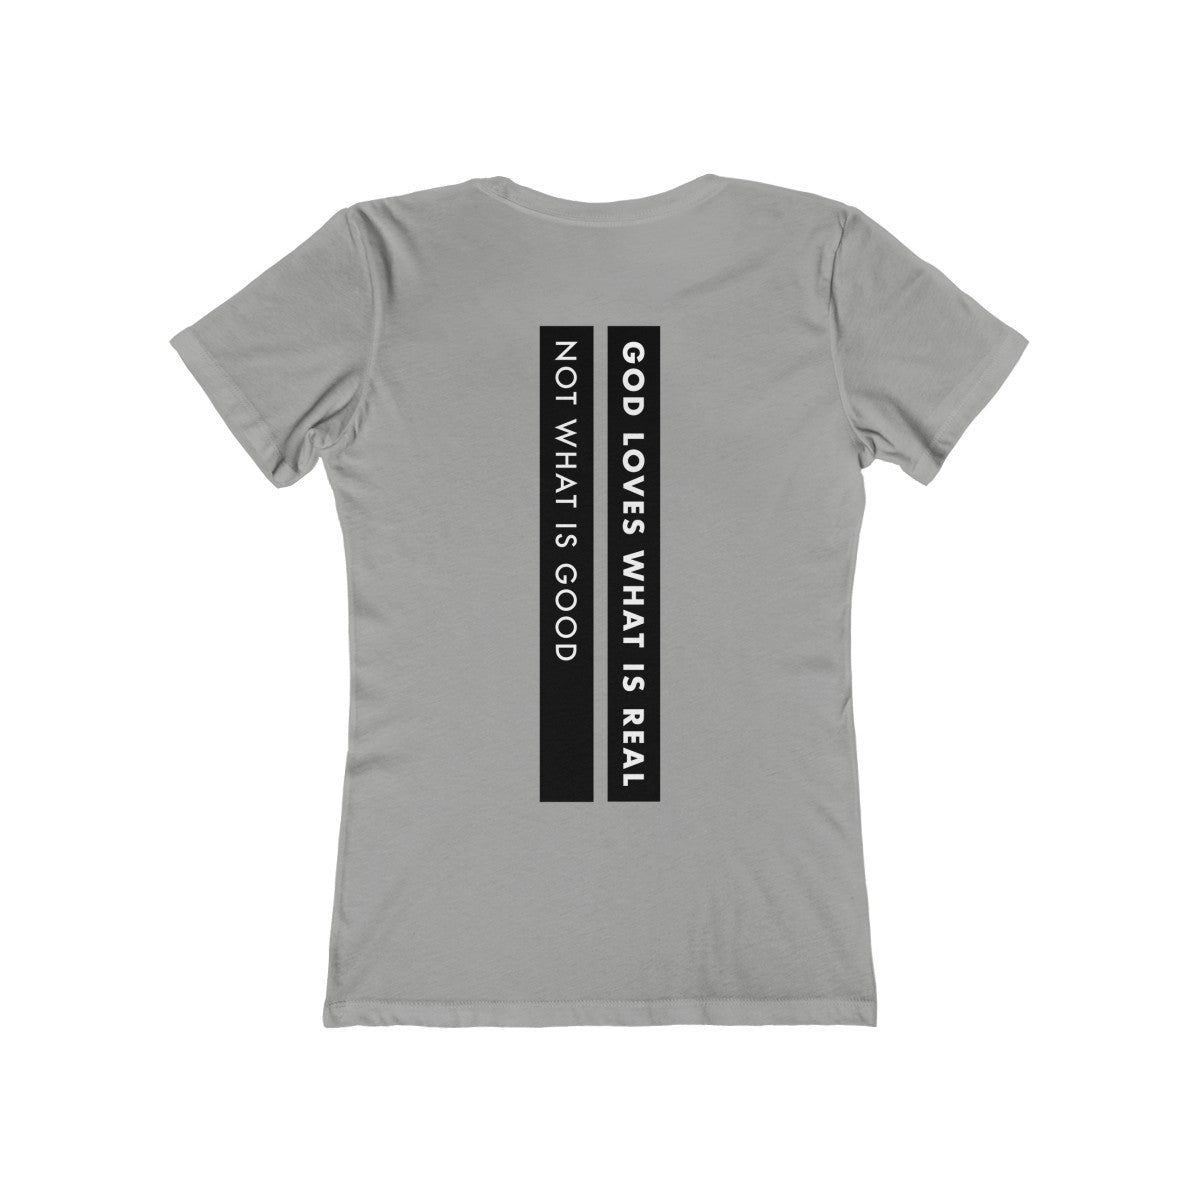 God Loves What Is Real Not What Is Good Women's The Boyfriend Tee